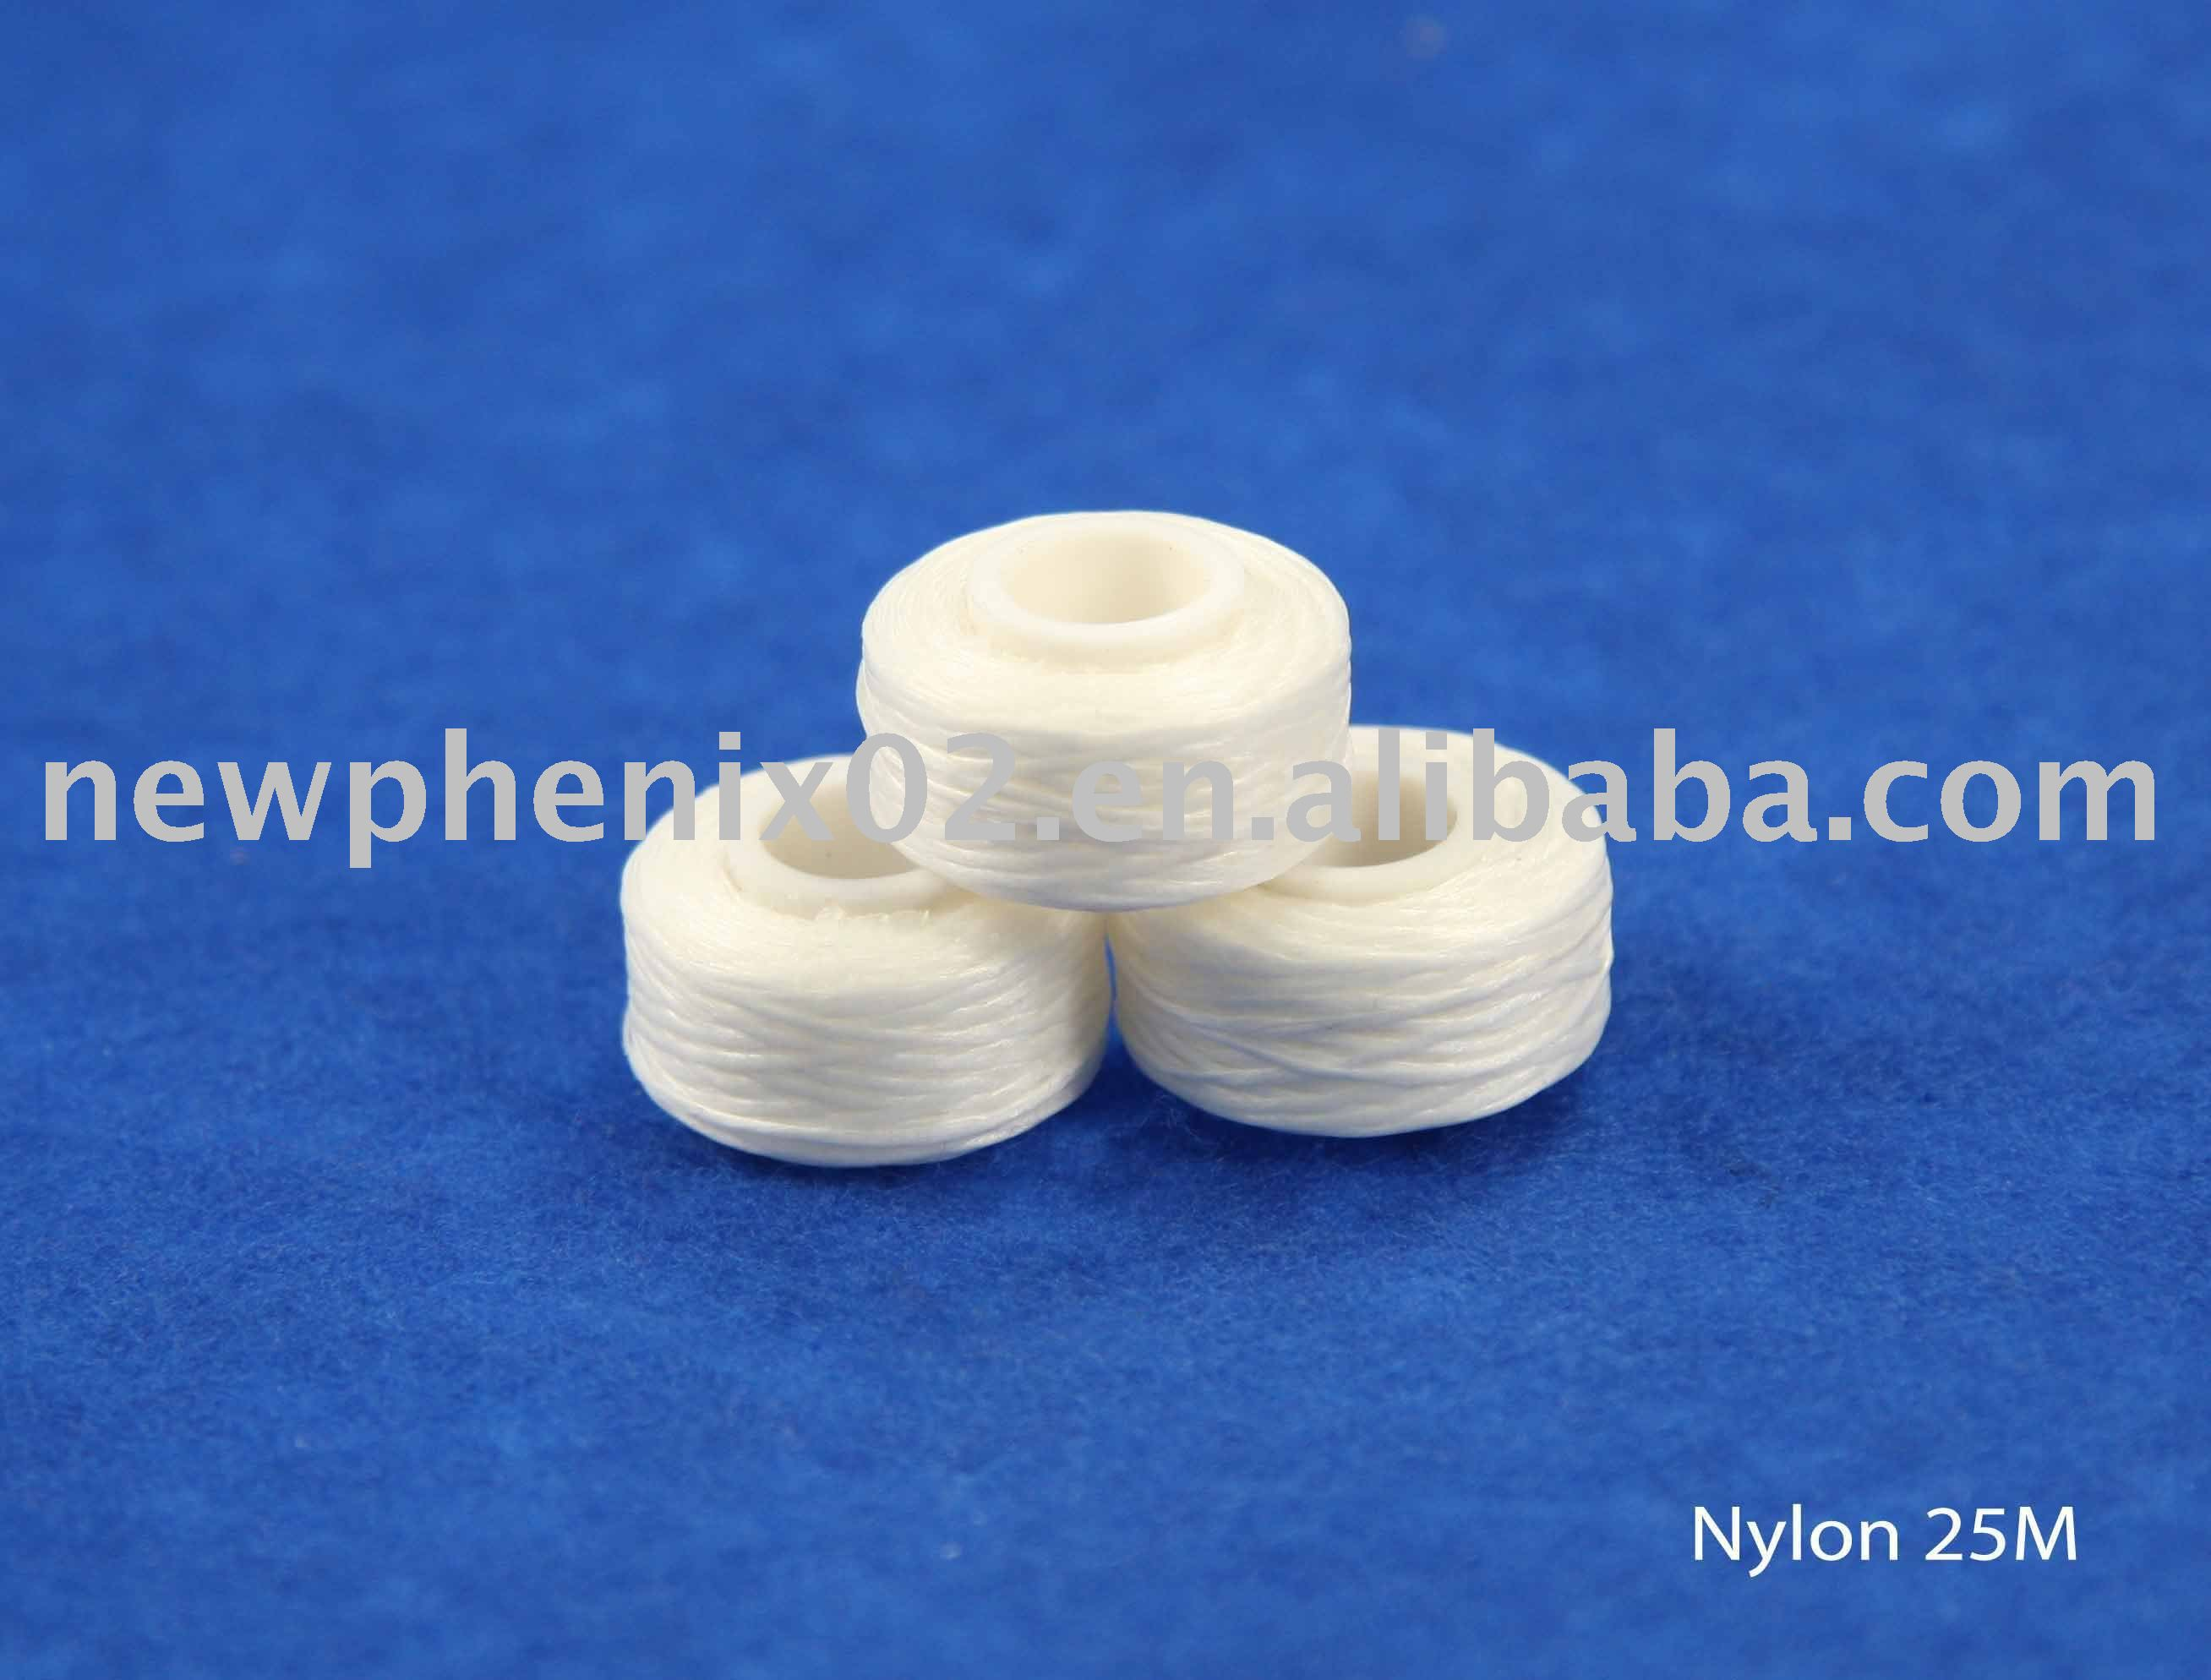 Bulk Waxed & Unwaxed silk dental floss